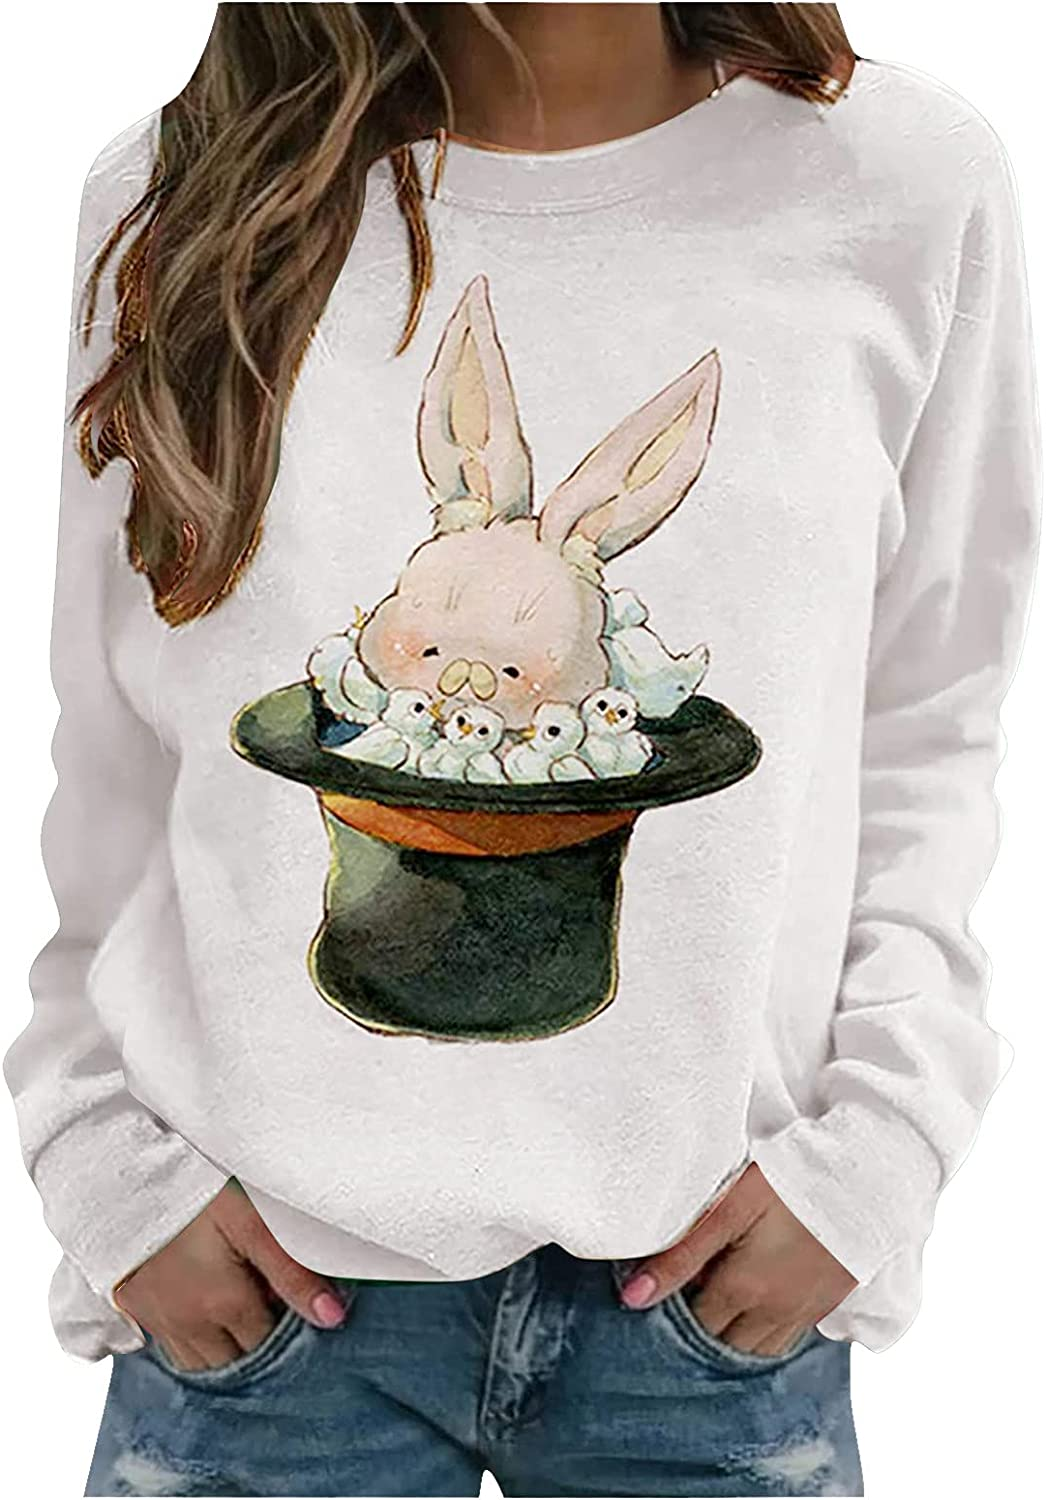 Womens Cute Graphic Superior Sweatshirt Casual San Jose Mall Pullovers T Fit Loose Tops